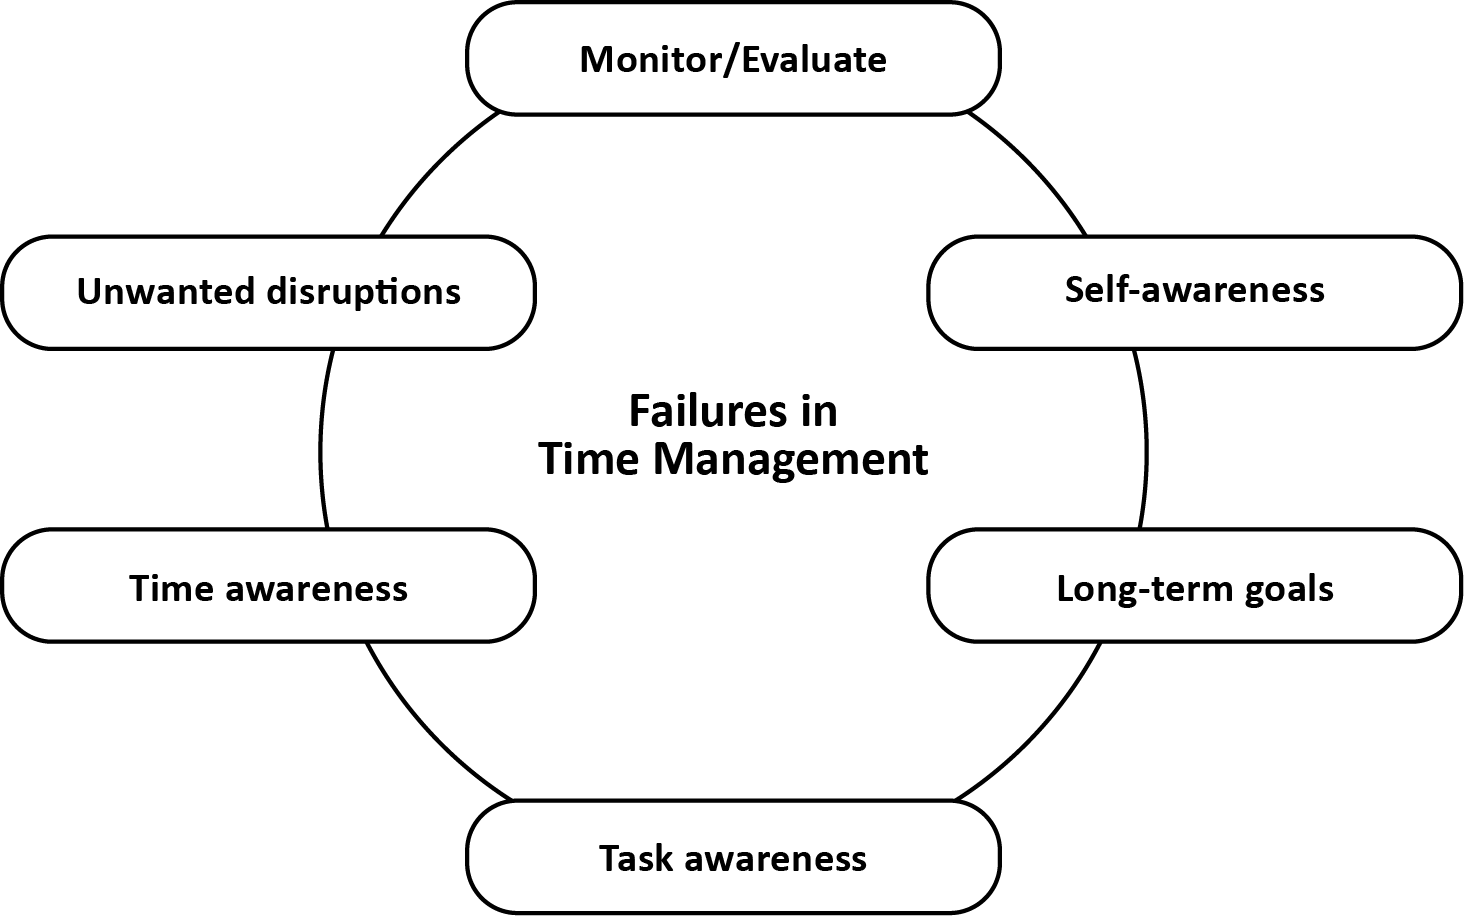 Diagram of failures in time management. Causes shown are - self-awareness, long-term goals, task awareness, time awareness, unwanted disruptions, monitor/evaluate